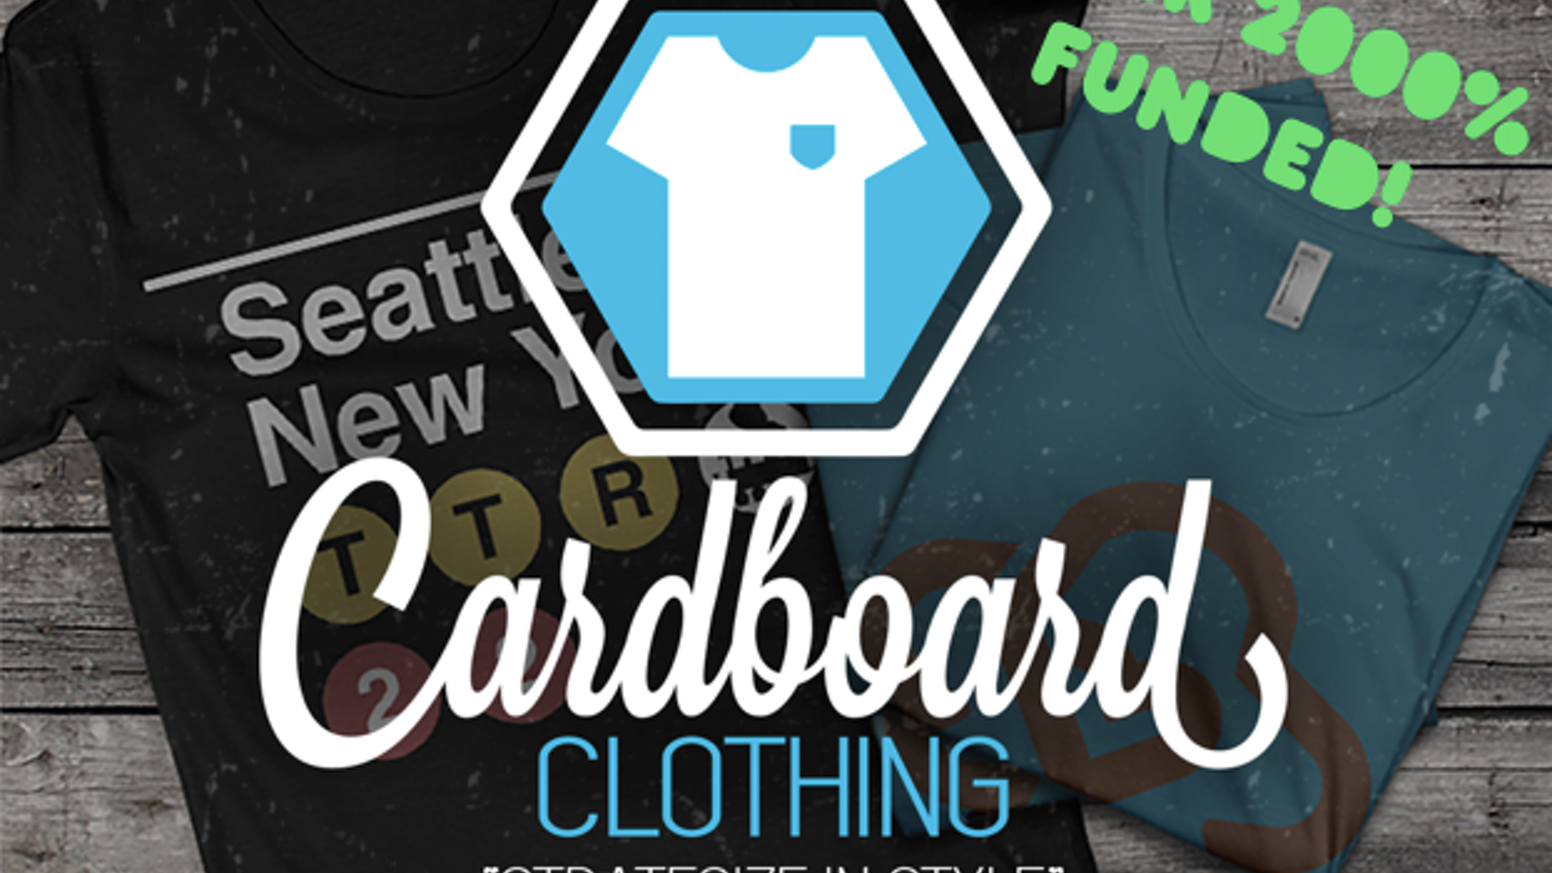 Shirts and ties for board gamers, handcrafted in the U.S.A. Cardboard Clothing will help you strategize in style!